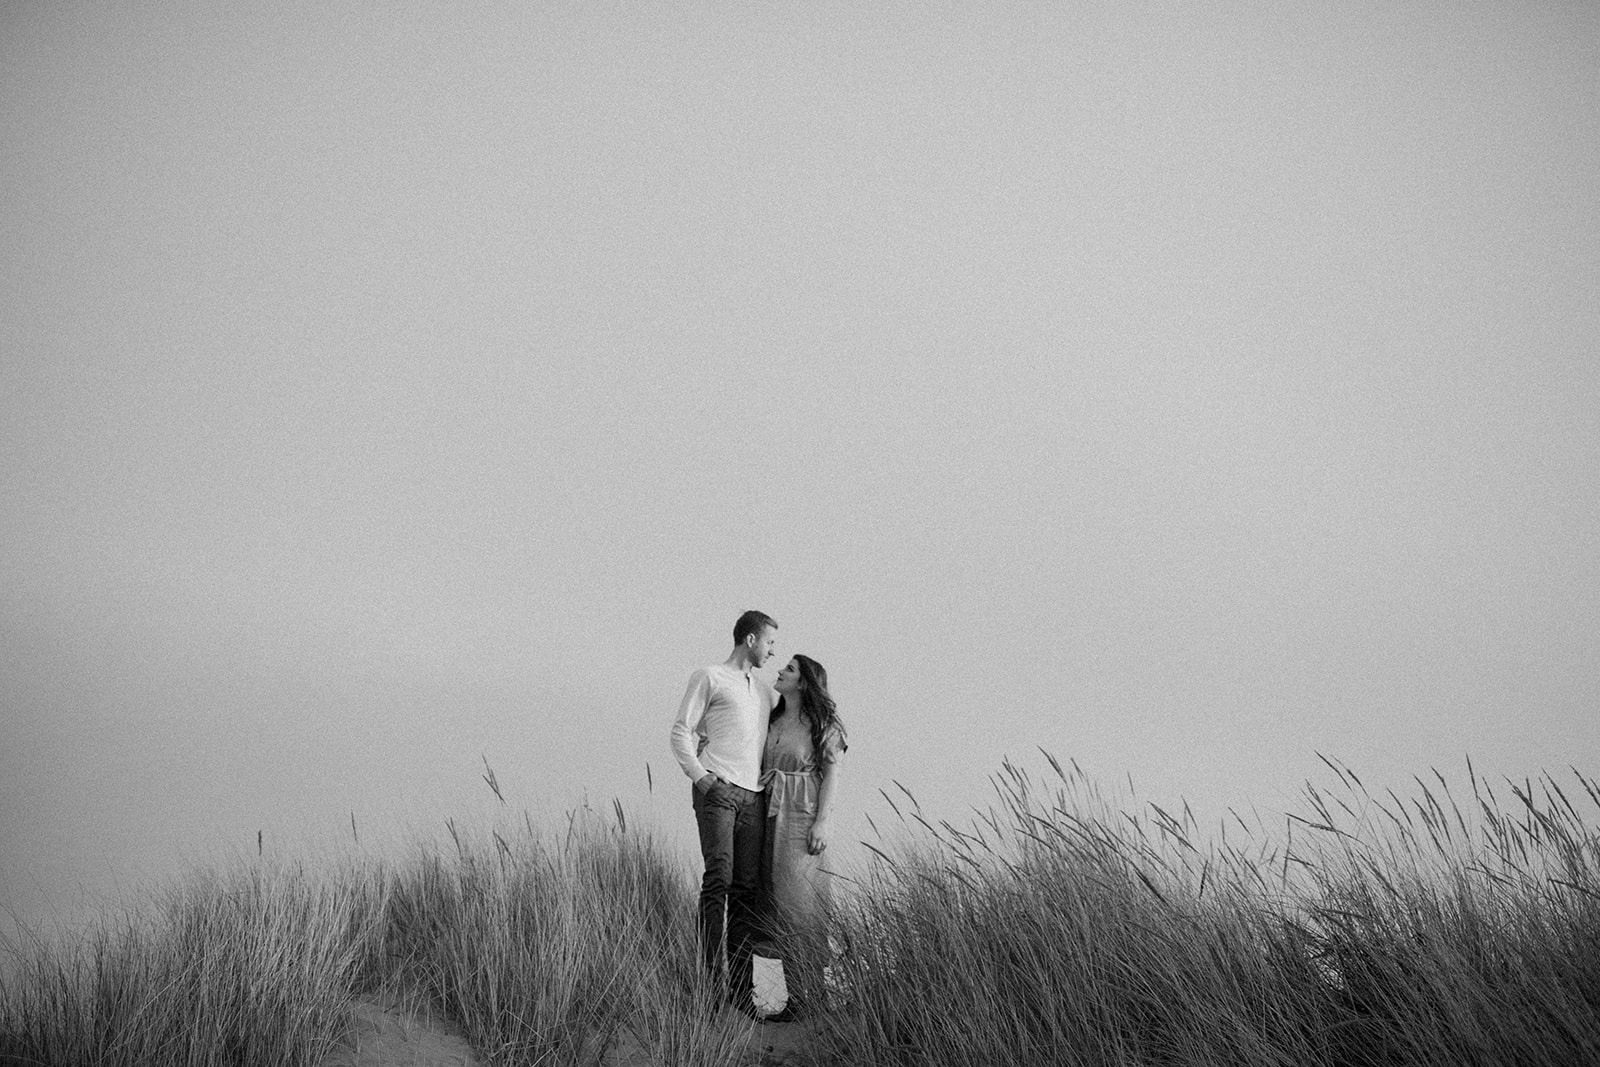 Emily_and_Jeff_Oregon_Coast_Engagement_Dawn_Charles_Photographer-323.jpg